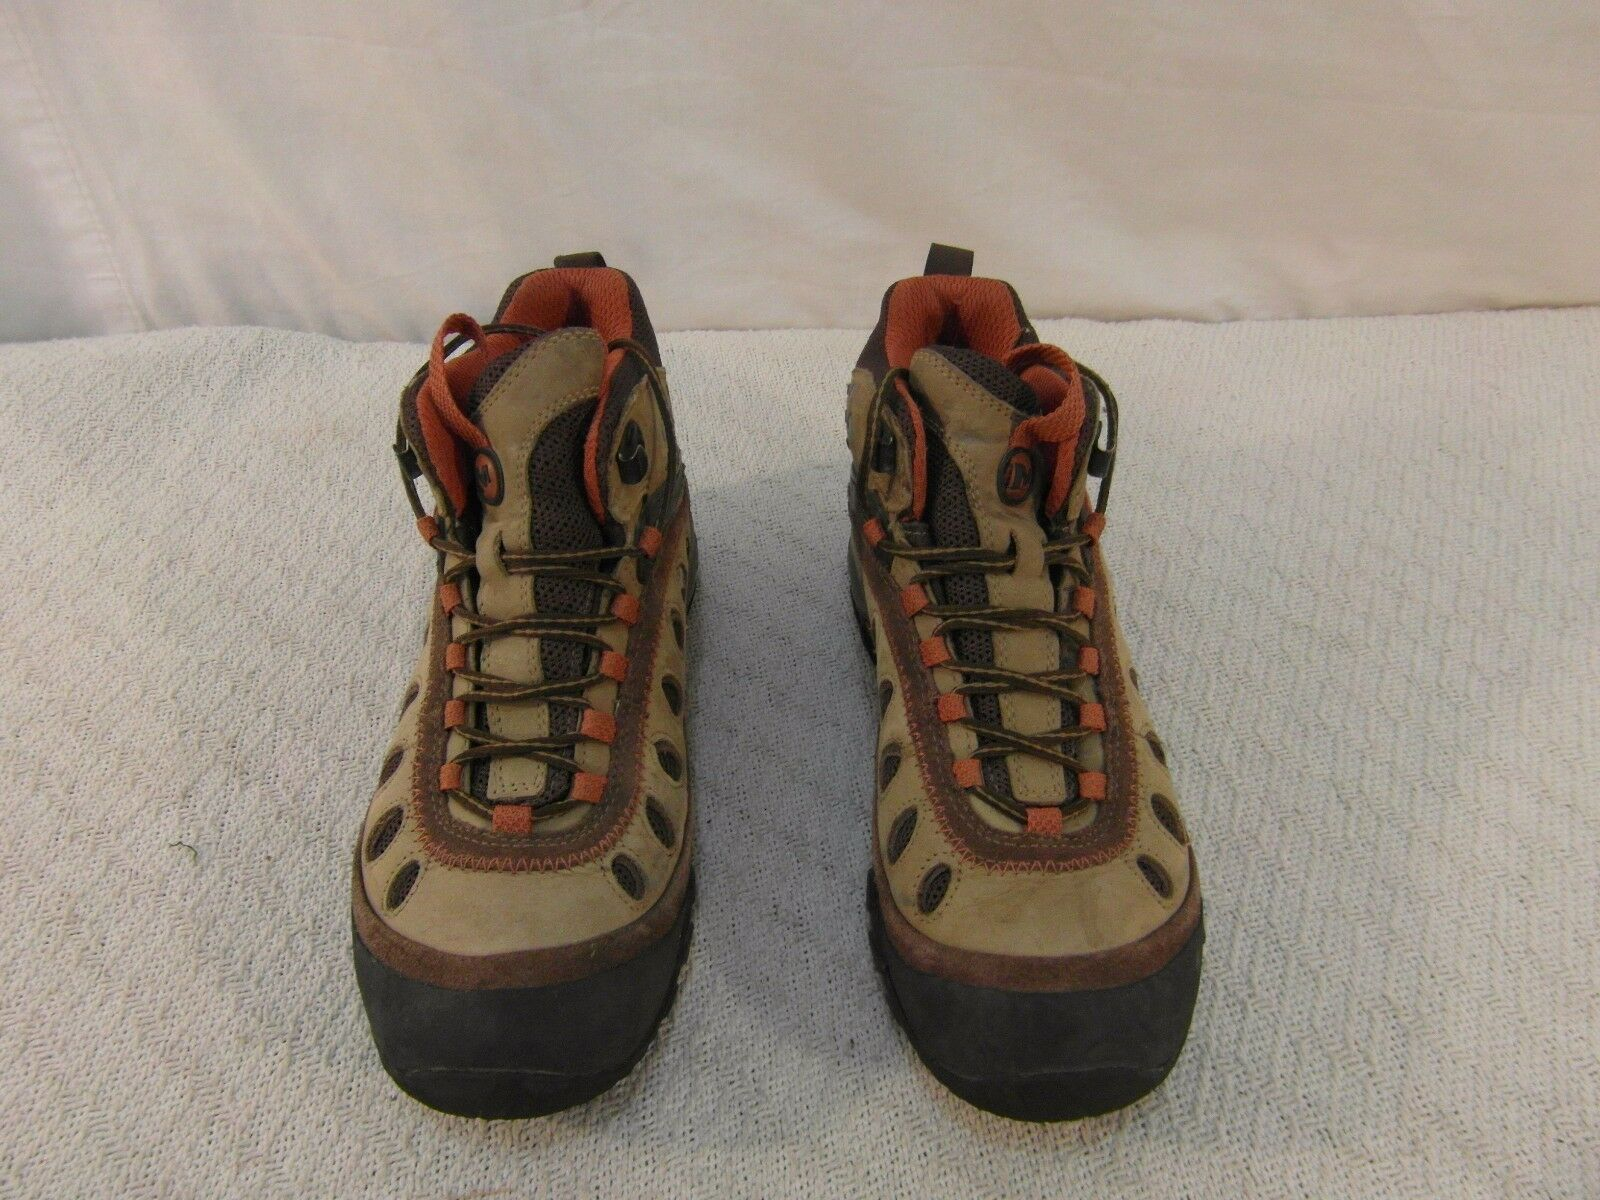 Adult Women's Merrell Brown Orange Leather 9 Lace Up Hiking Shoes 33771